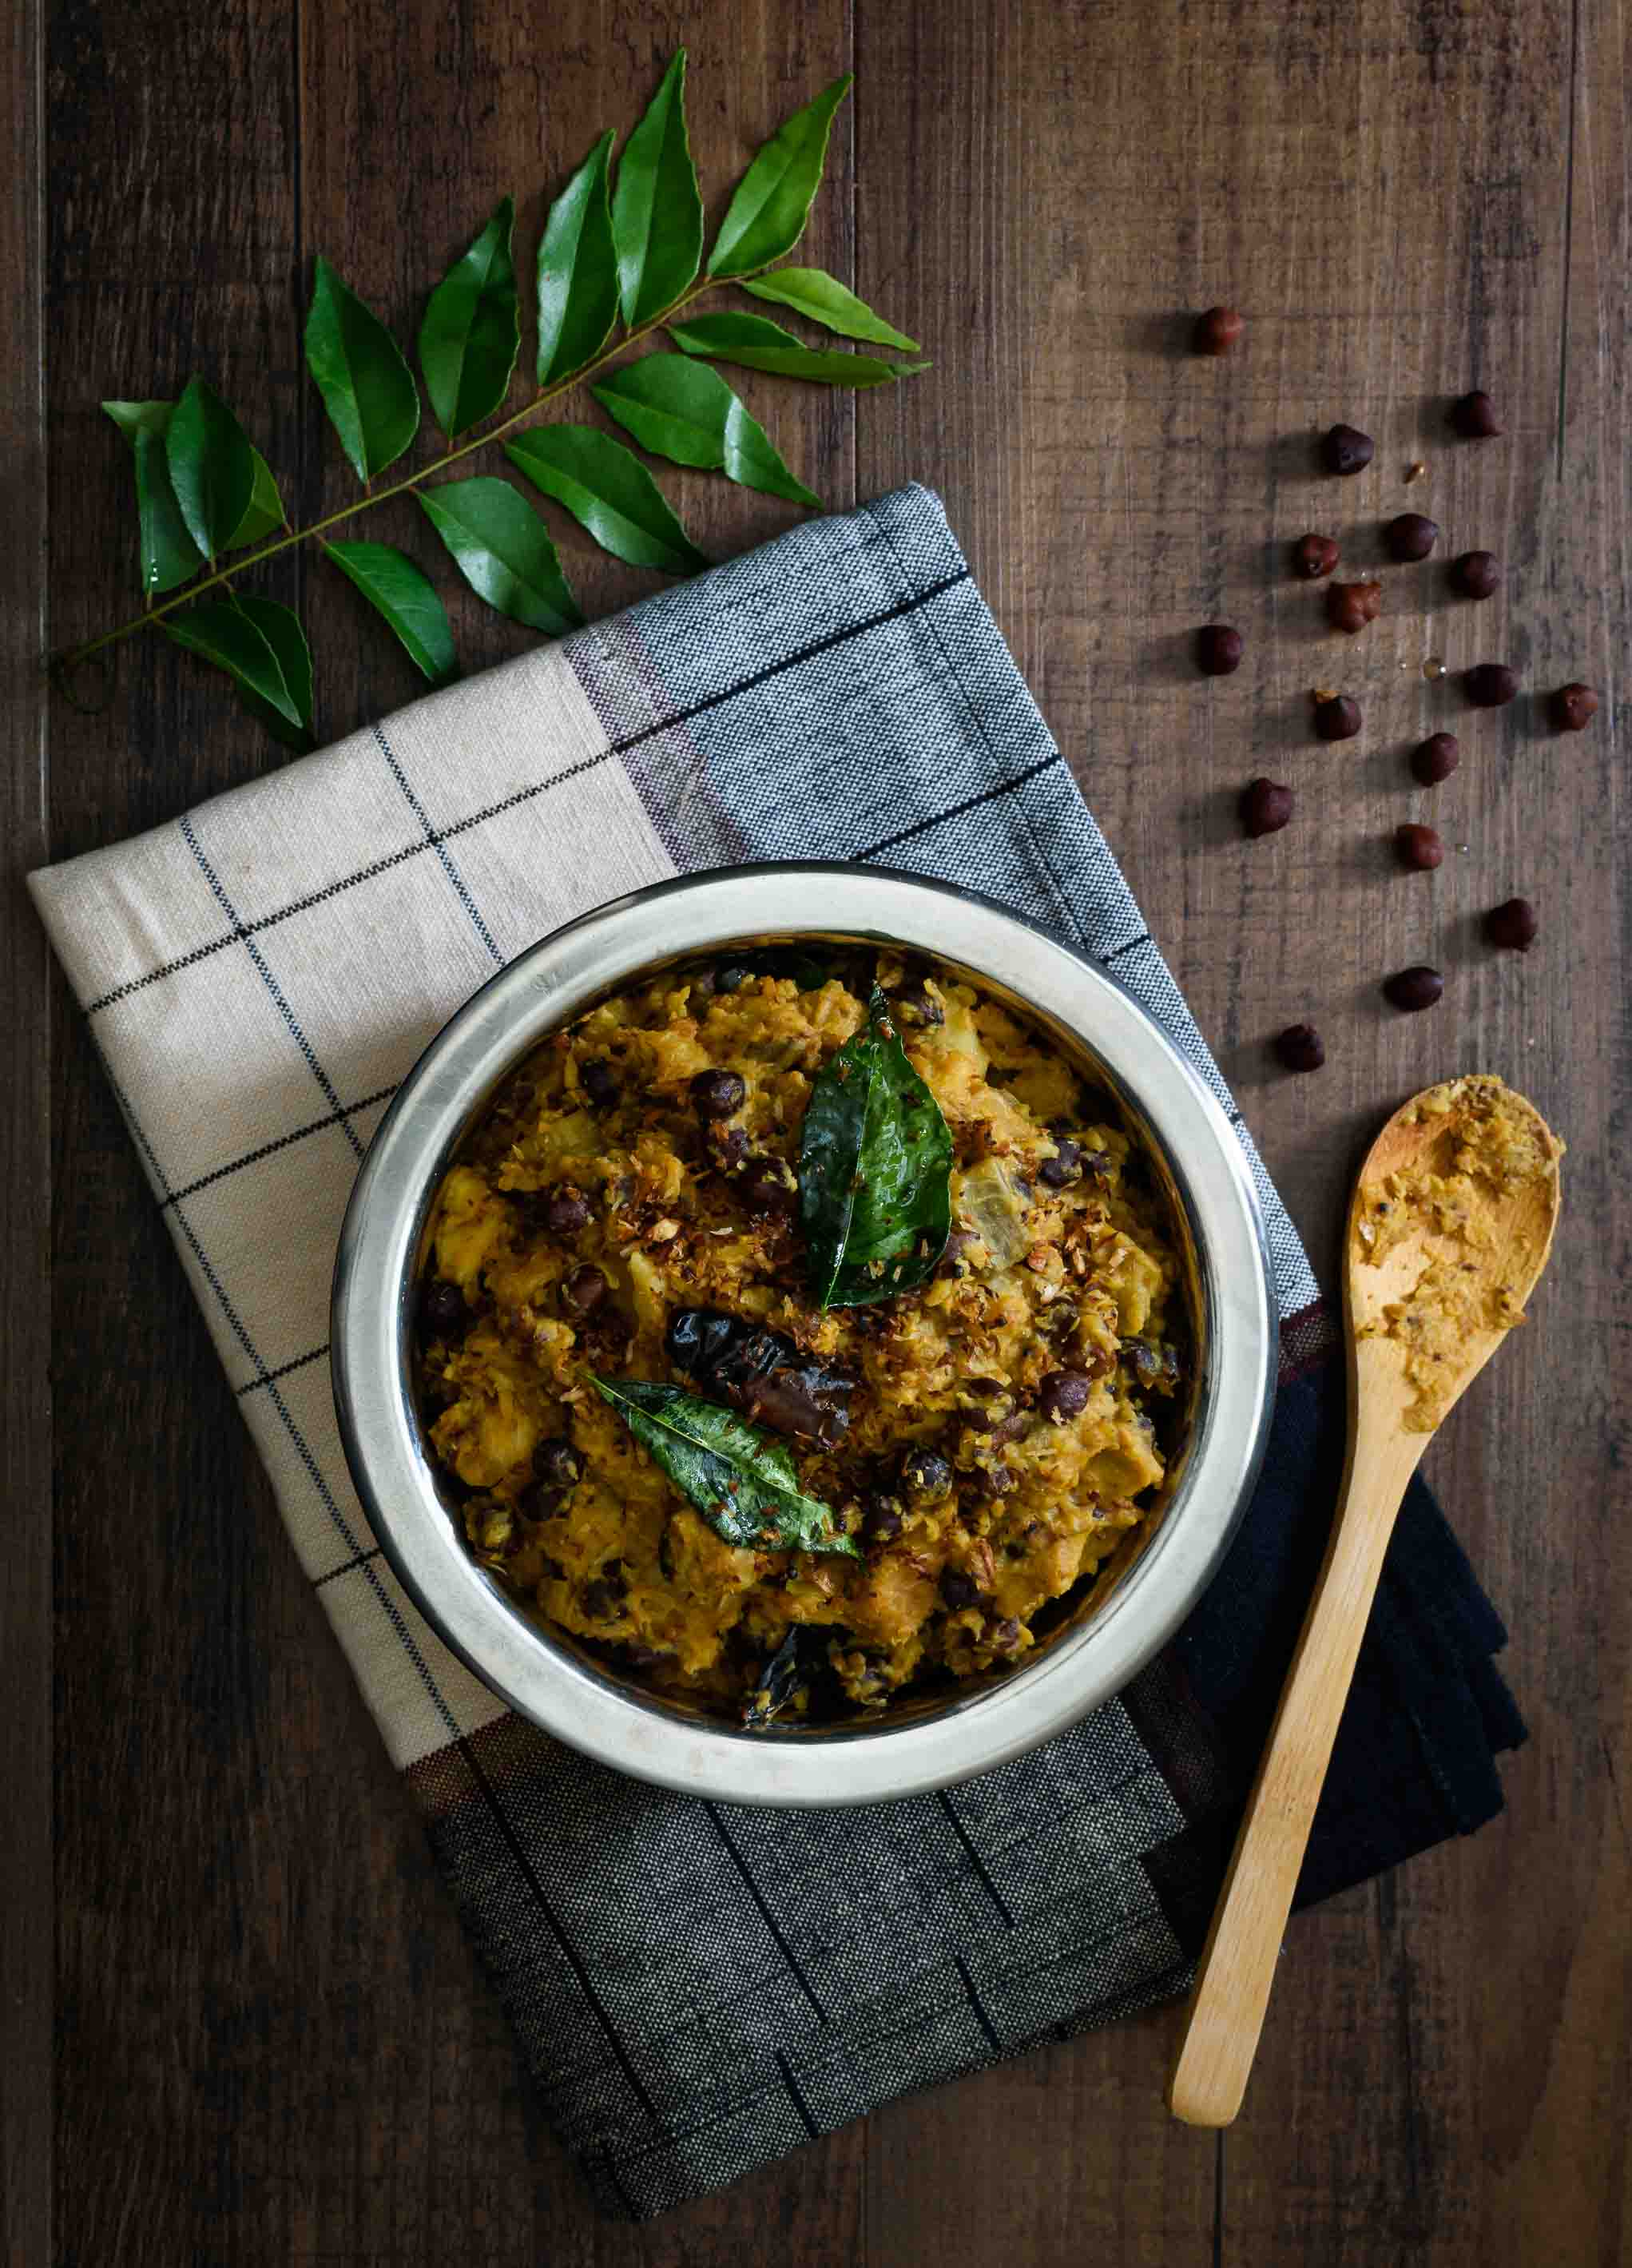 Kootu curry pepper delight kootu curry pepper delight pepperdelightblog recipe kootucurry sadya keralafood forumfinder Choice Image